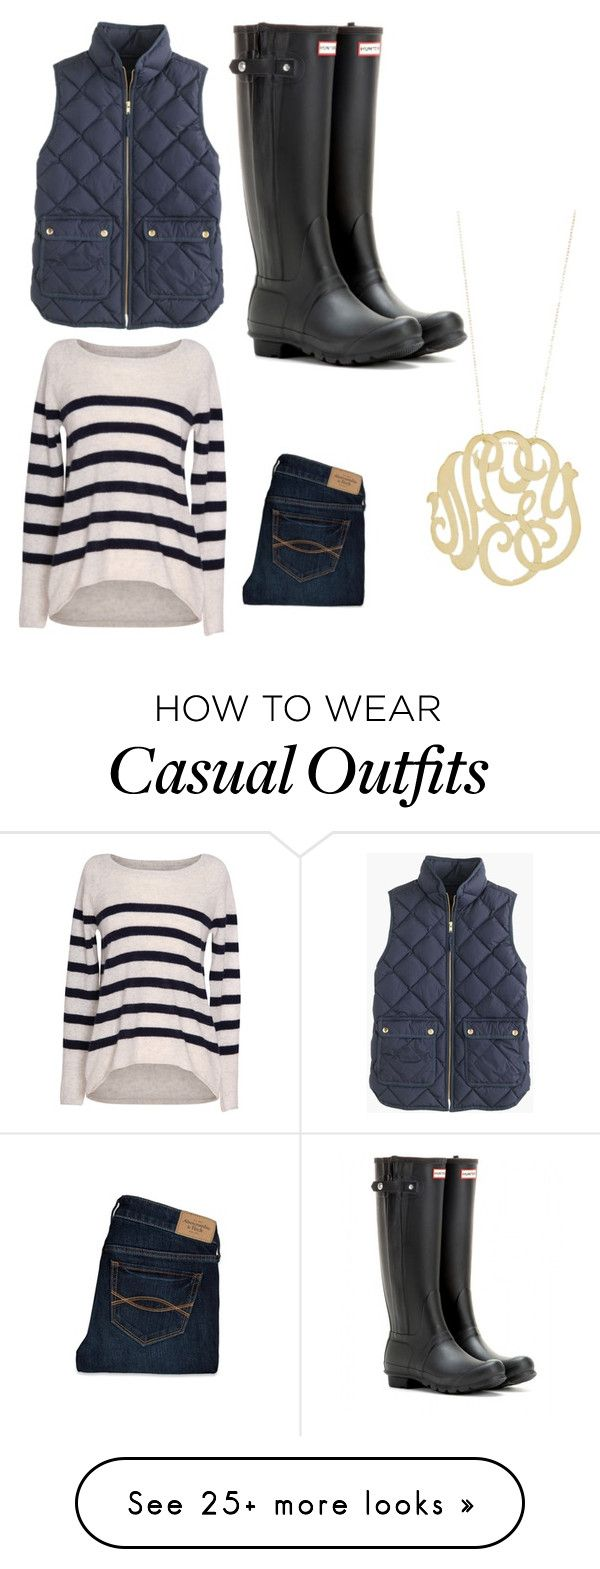 """""""Casual preppy"""" by cgdooley on Polyvore featuring J.Crew, Velvet by Graham & Spencer, Hunter, Abercrombie & Fitch, women's clothing, women's fashion, women, female, woman and misses"""